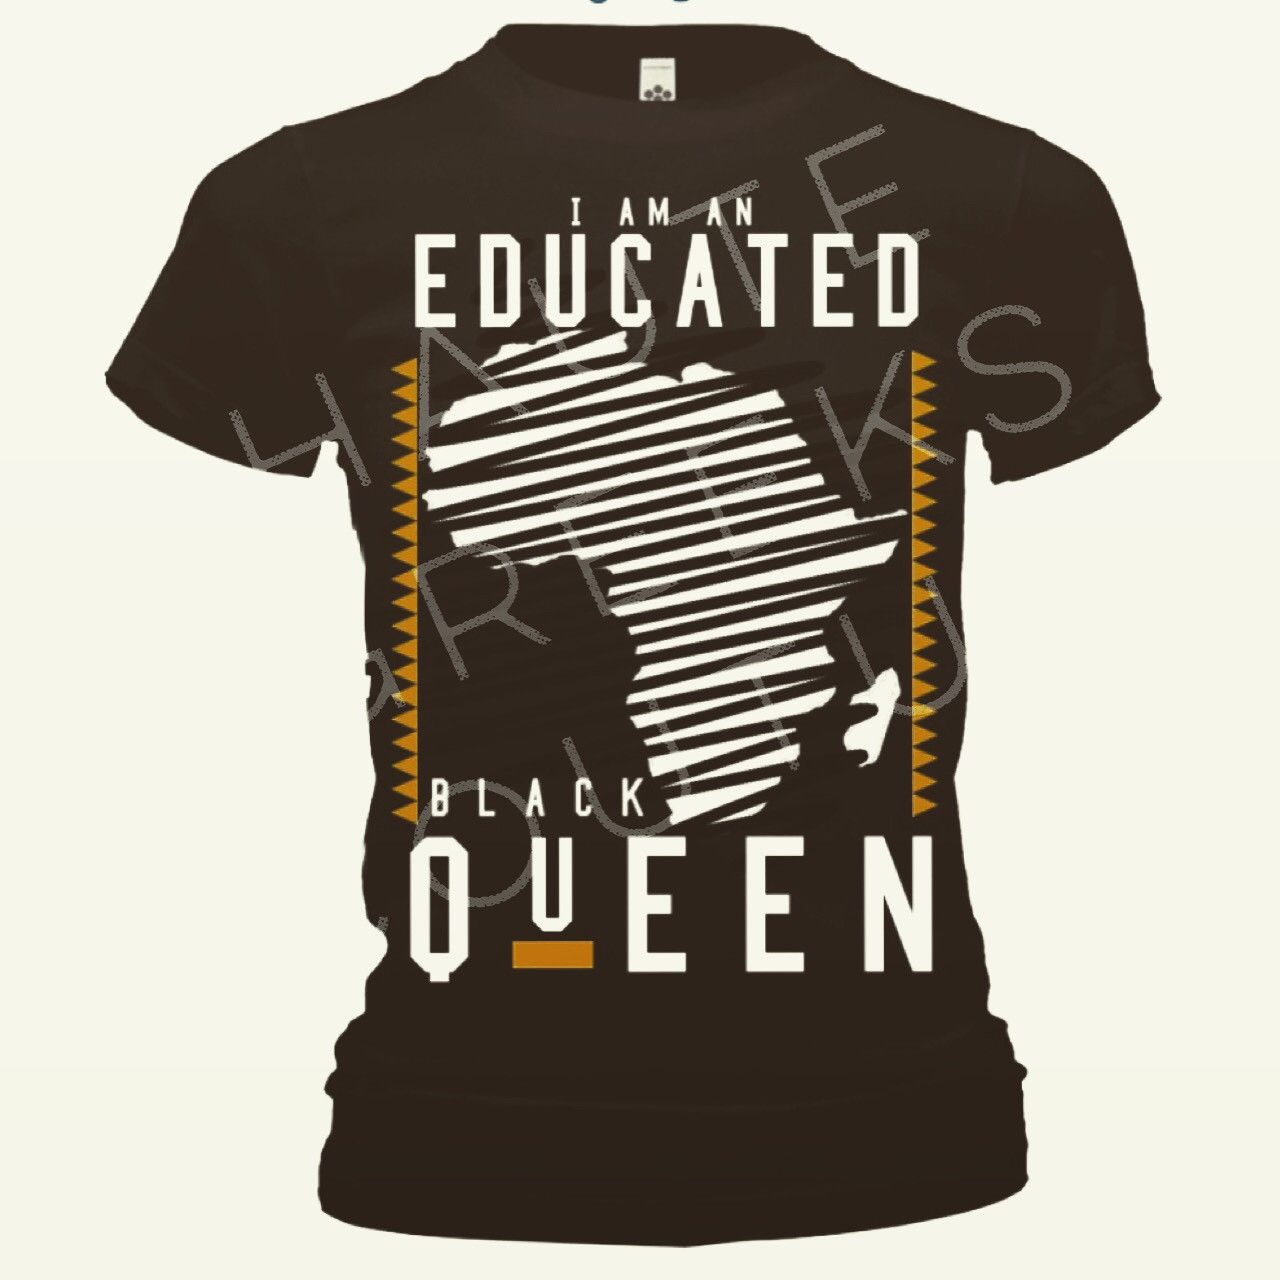 948e9a3c EDUCATED BLACK QUEEN FITTED SHIRT BLK | Tshirts with Flair | Shirts ...